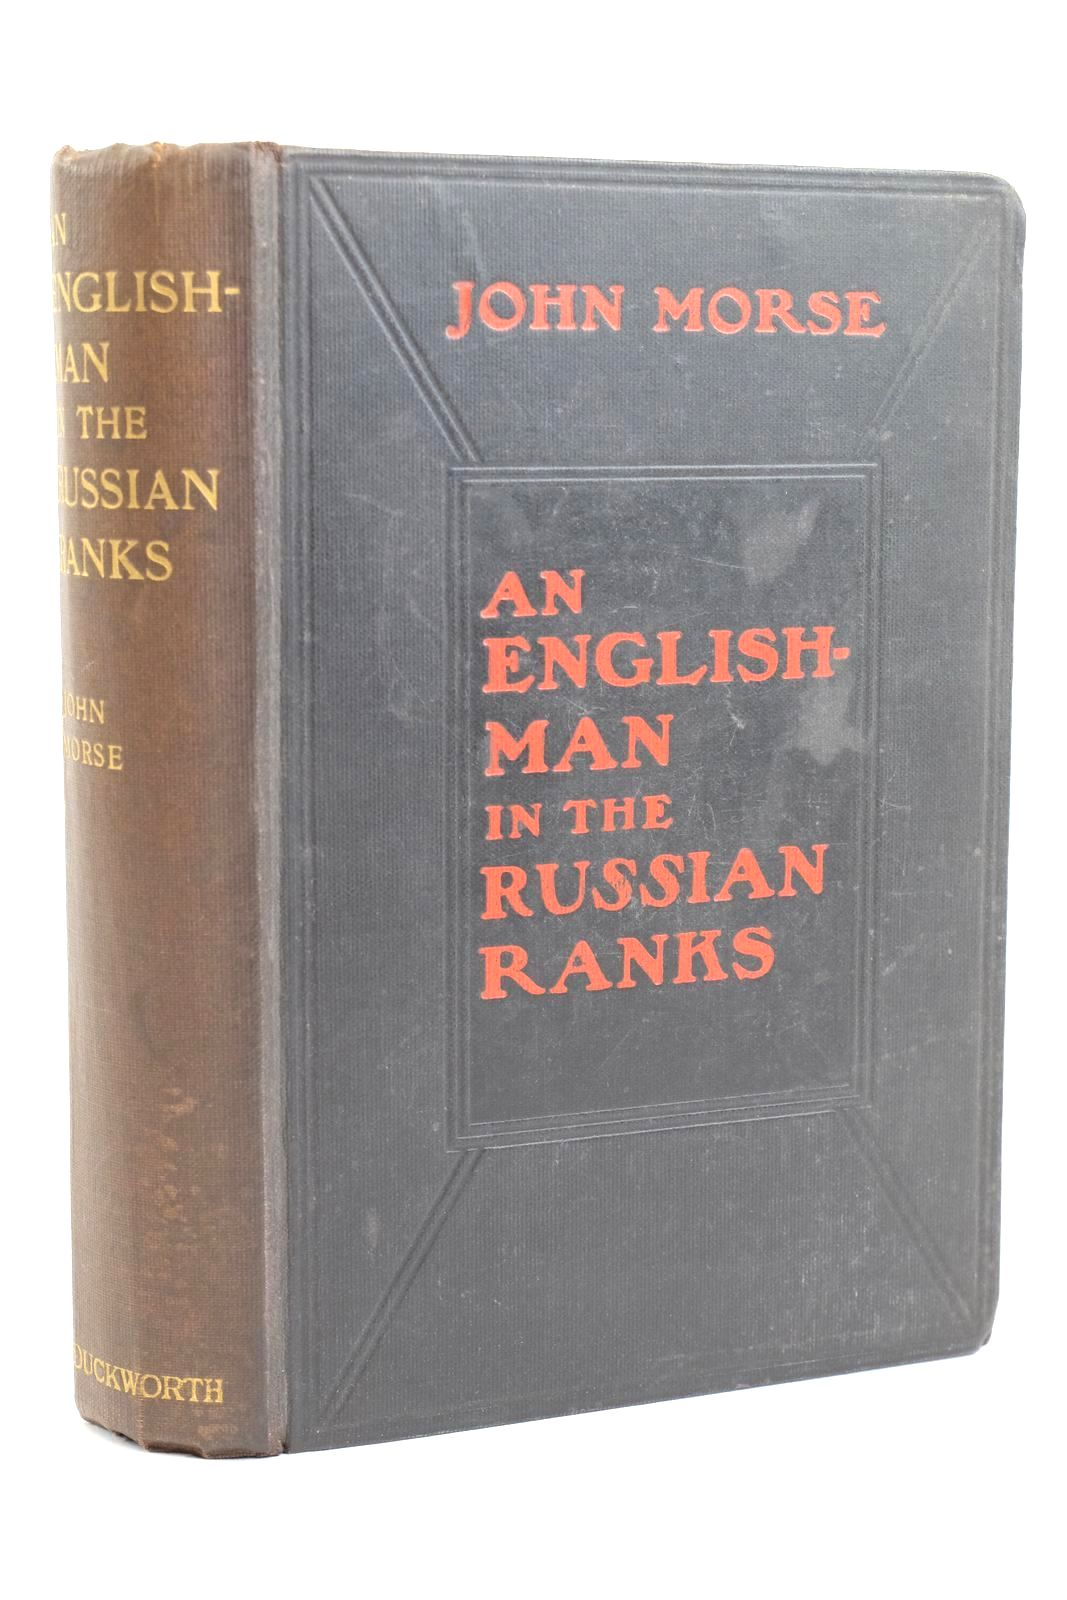 Photo of AN ENGLISHMAN IN THE RUSSIAN RANKS written by Morse, John published by Duckworth & Co. (STOCK CODE: 1320175)  for sale by Stella & Rose's Books